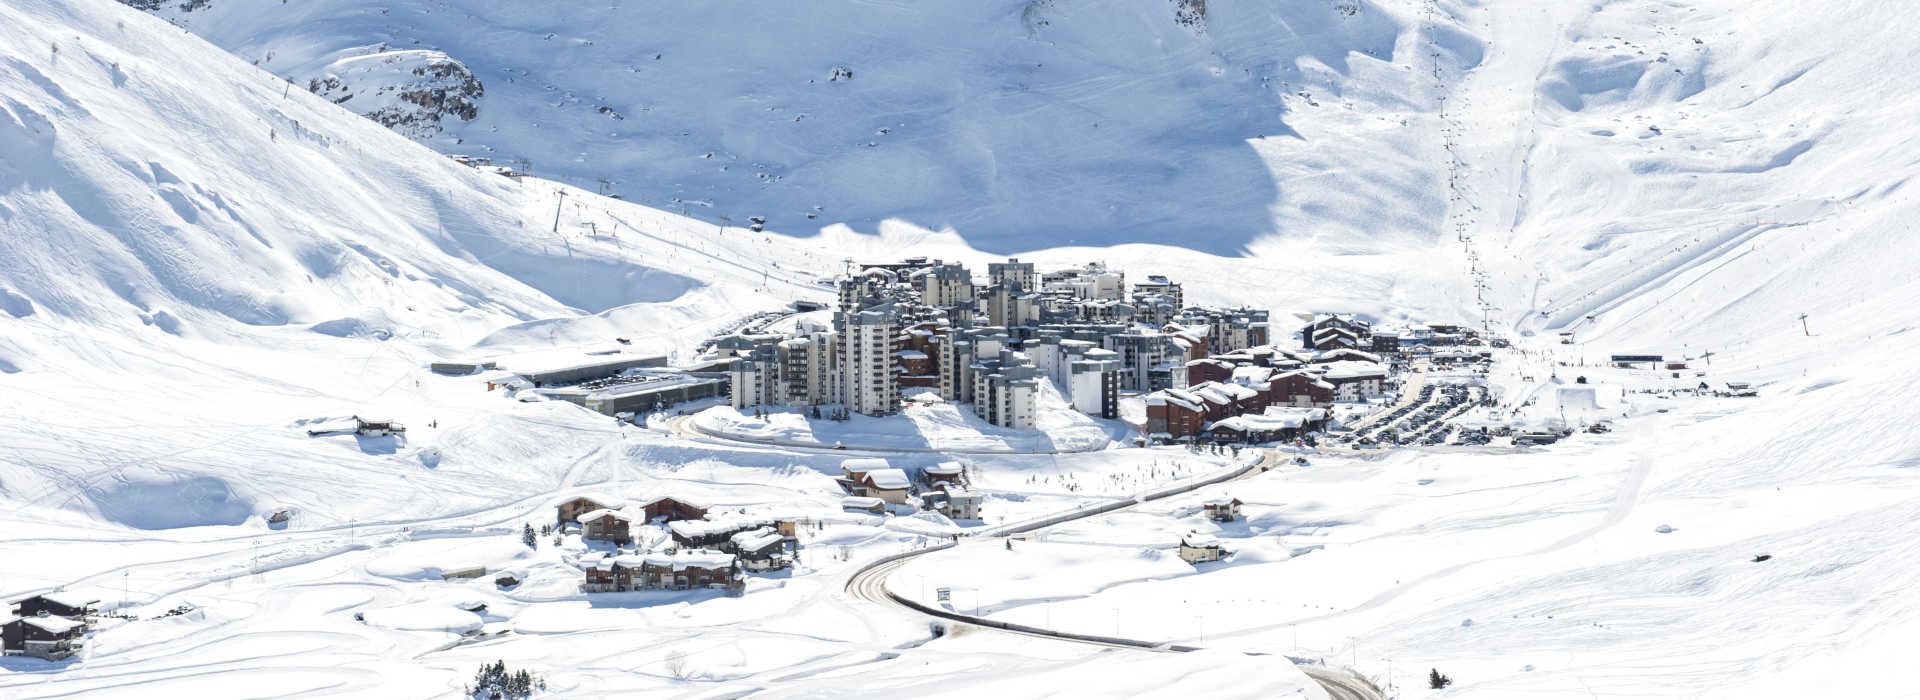 Ski resort Tignes